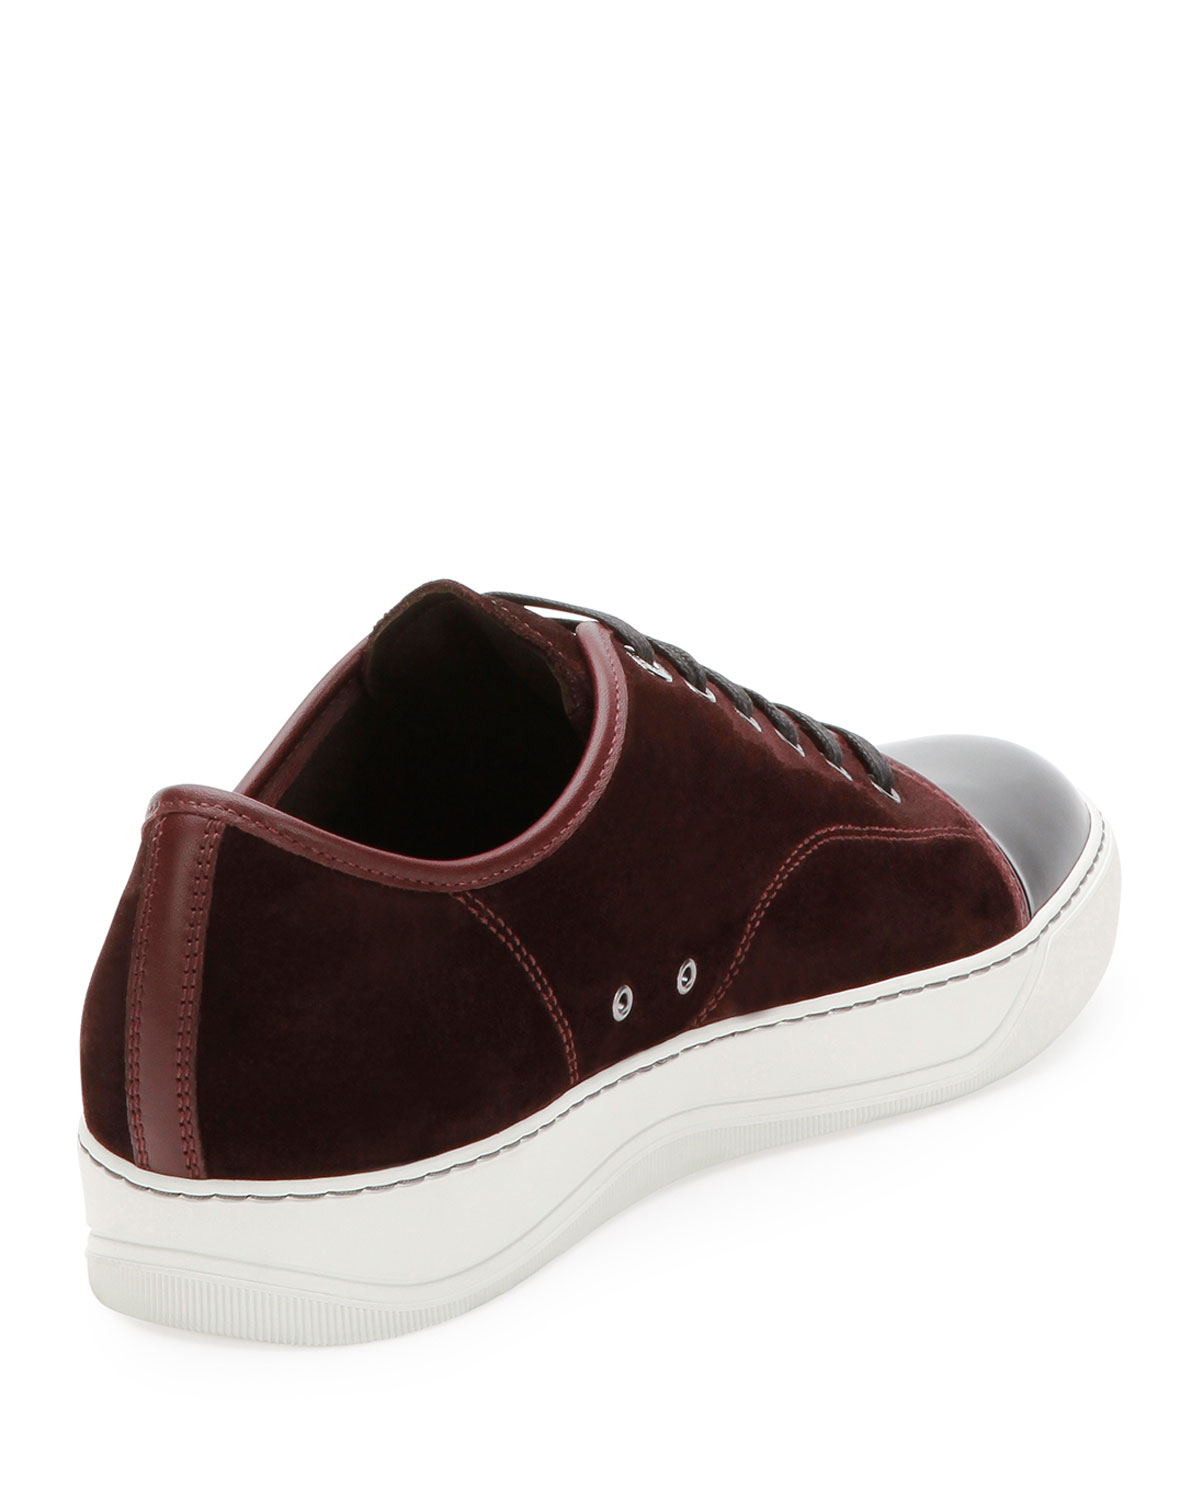 Am Shoe Company Suede Burgundy